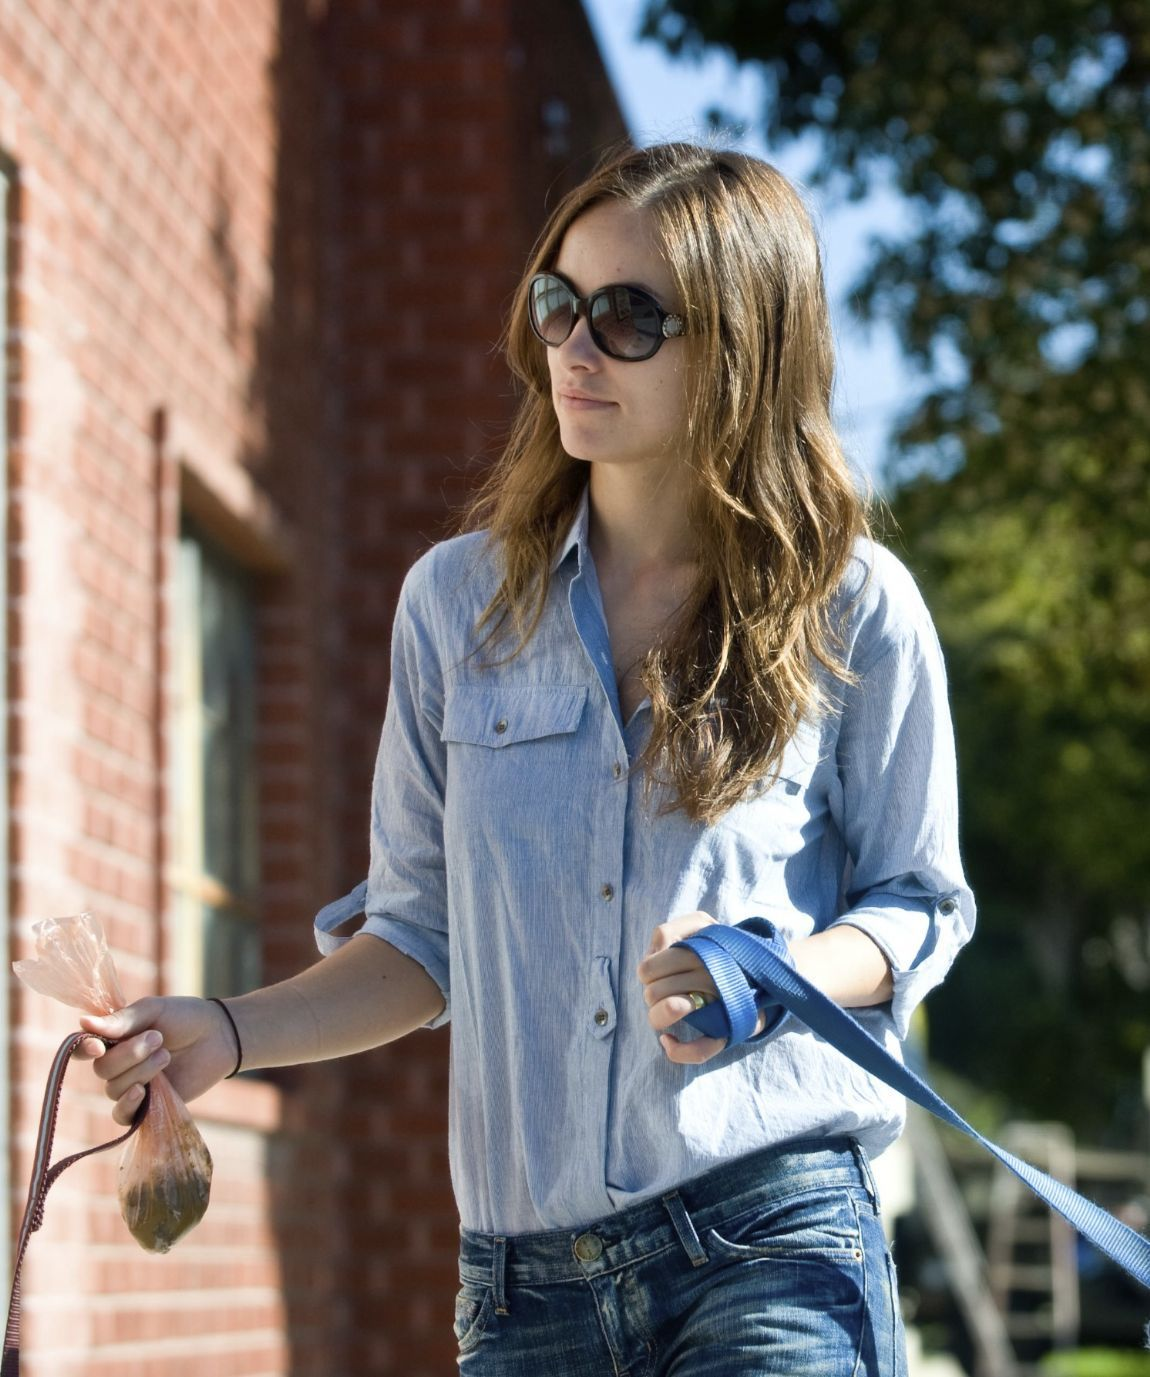 olivia wilde picking up poop